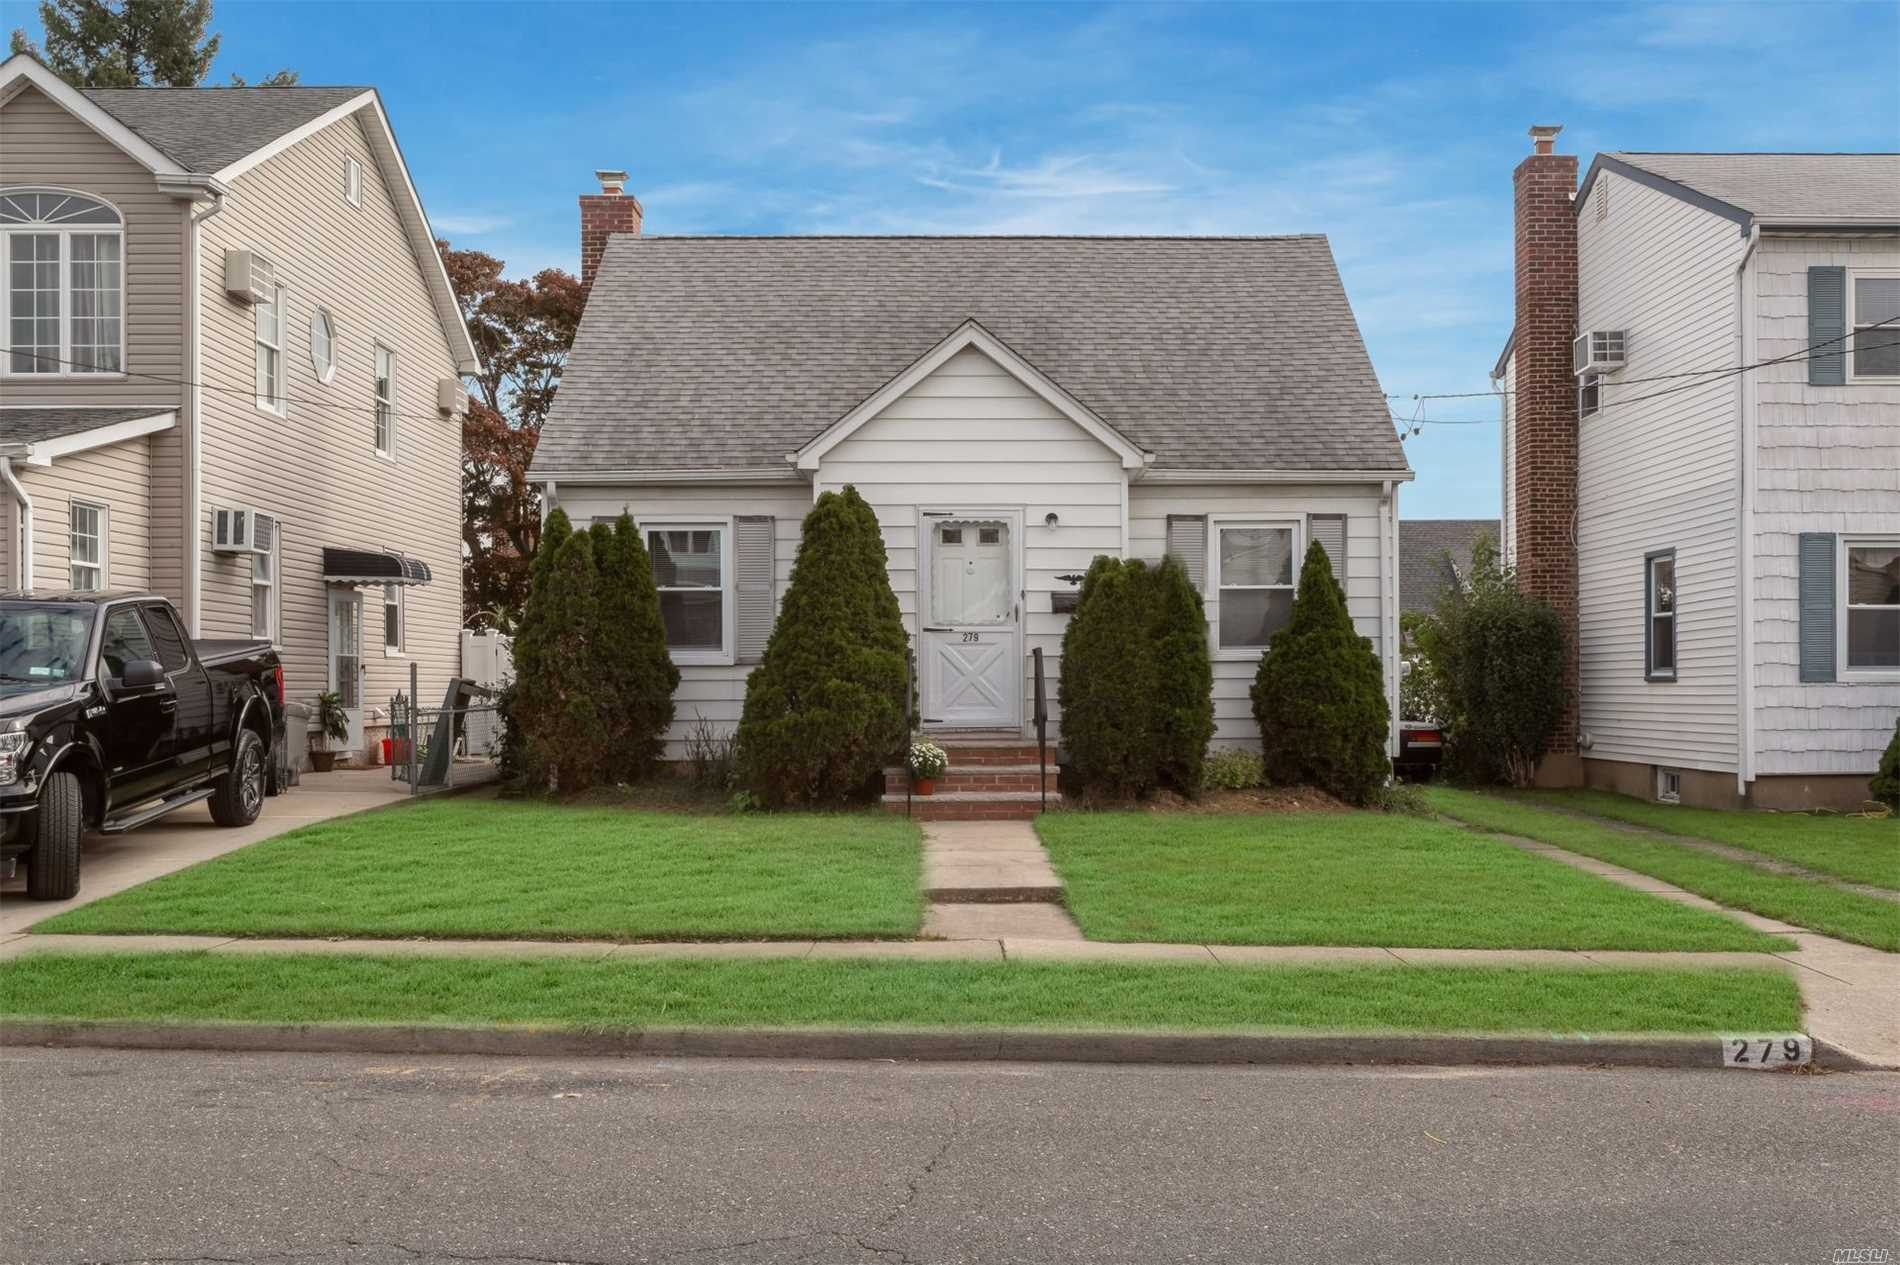 Photo of home for sale at 279 Cleveland St, Franklin Square NY